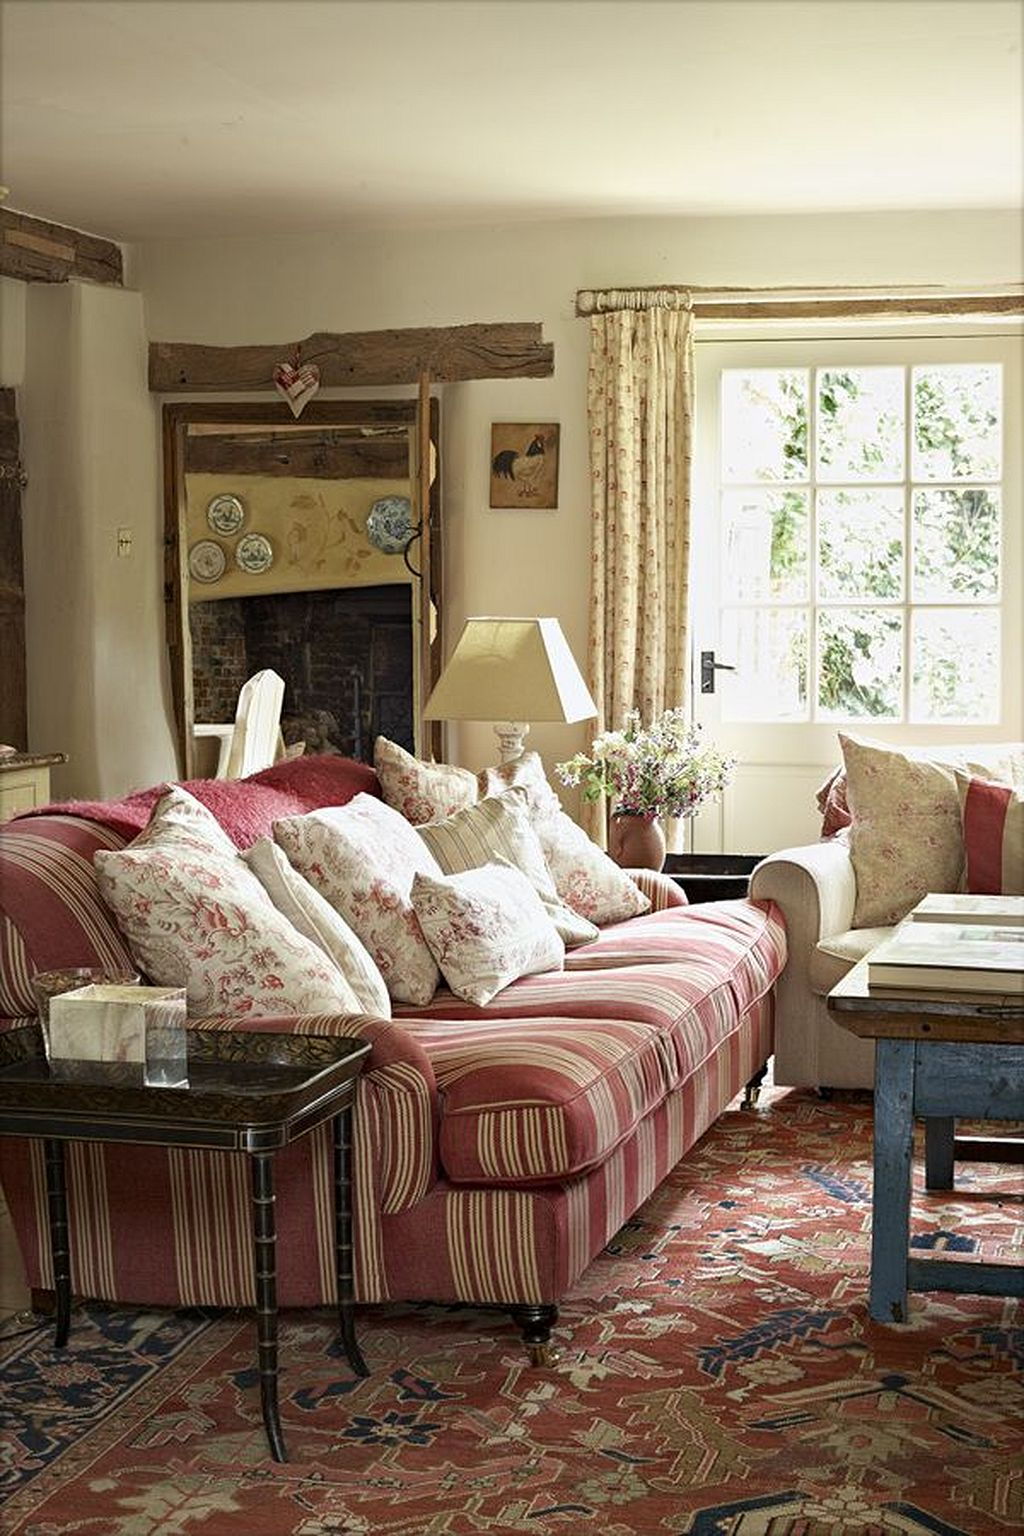 British Country Homes: 18 Images Of English Country Home Decor Ideas